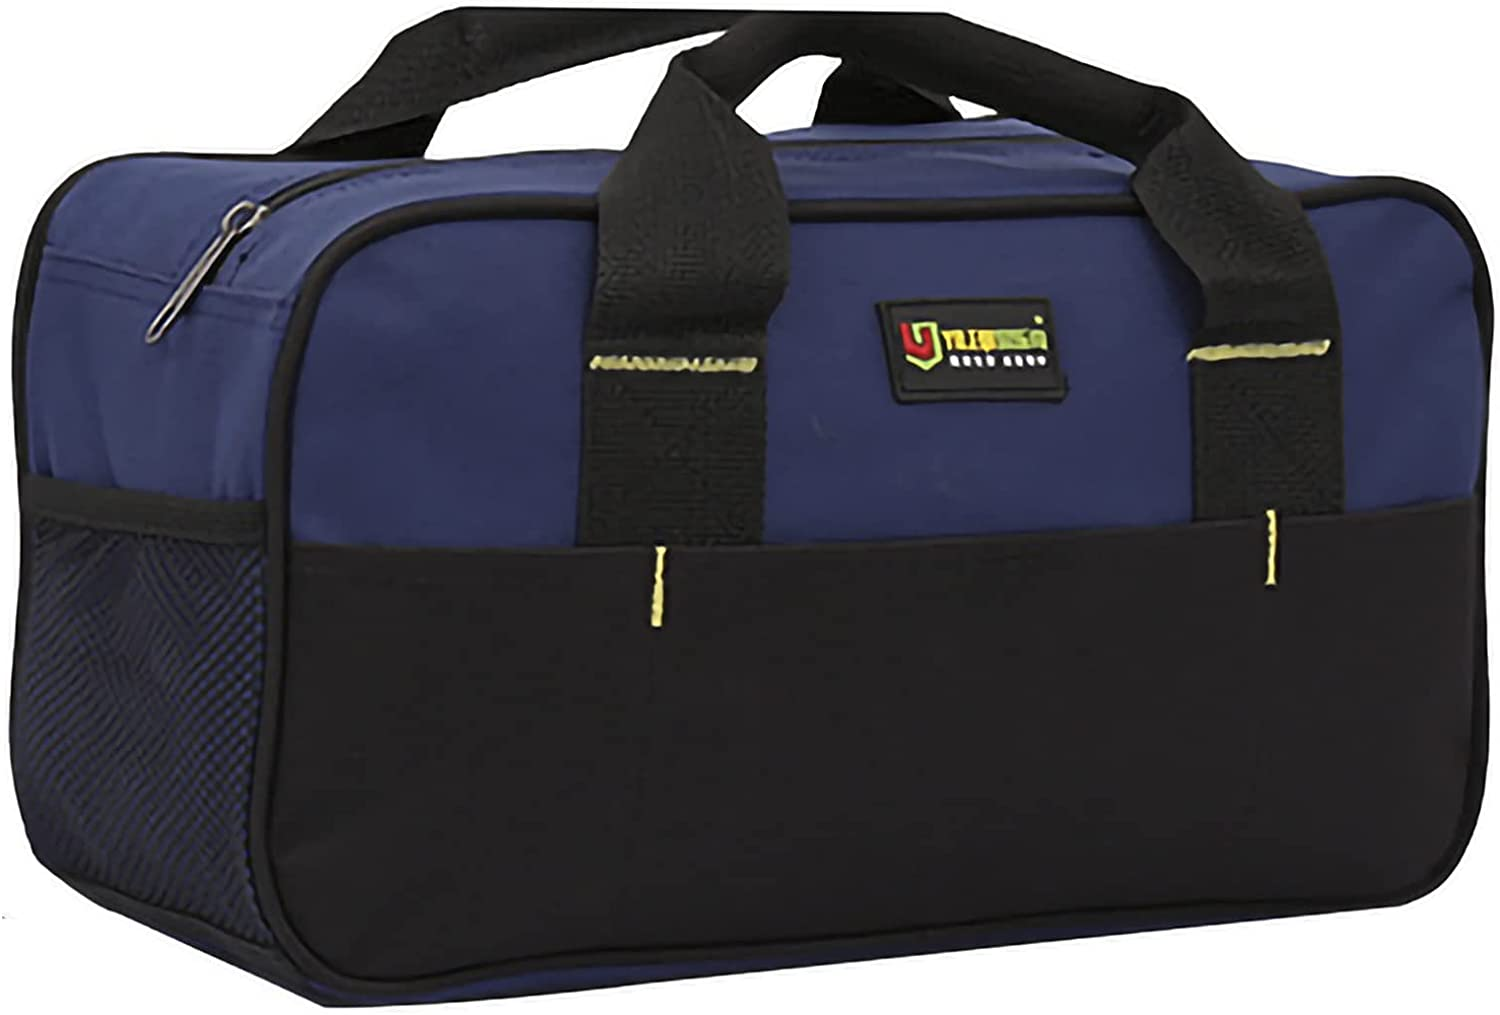 SKYUS Latest item Animer and price revision 14 Inch Small Tool Bag Waterproof Mouth Wide Tote